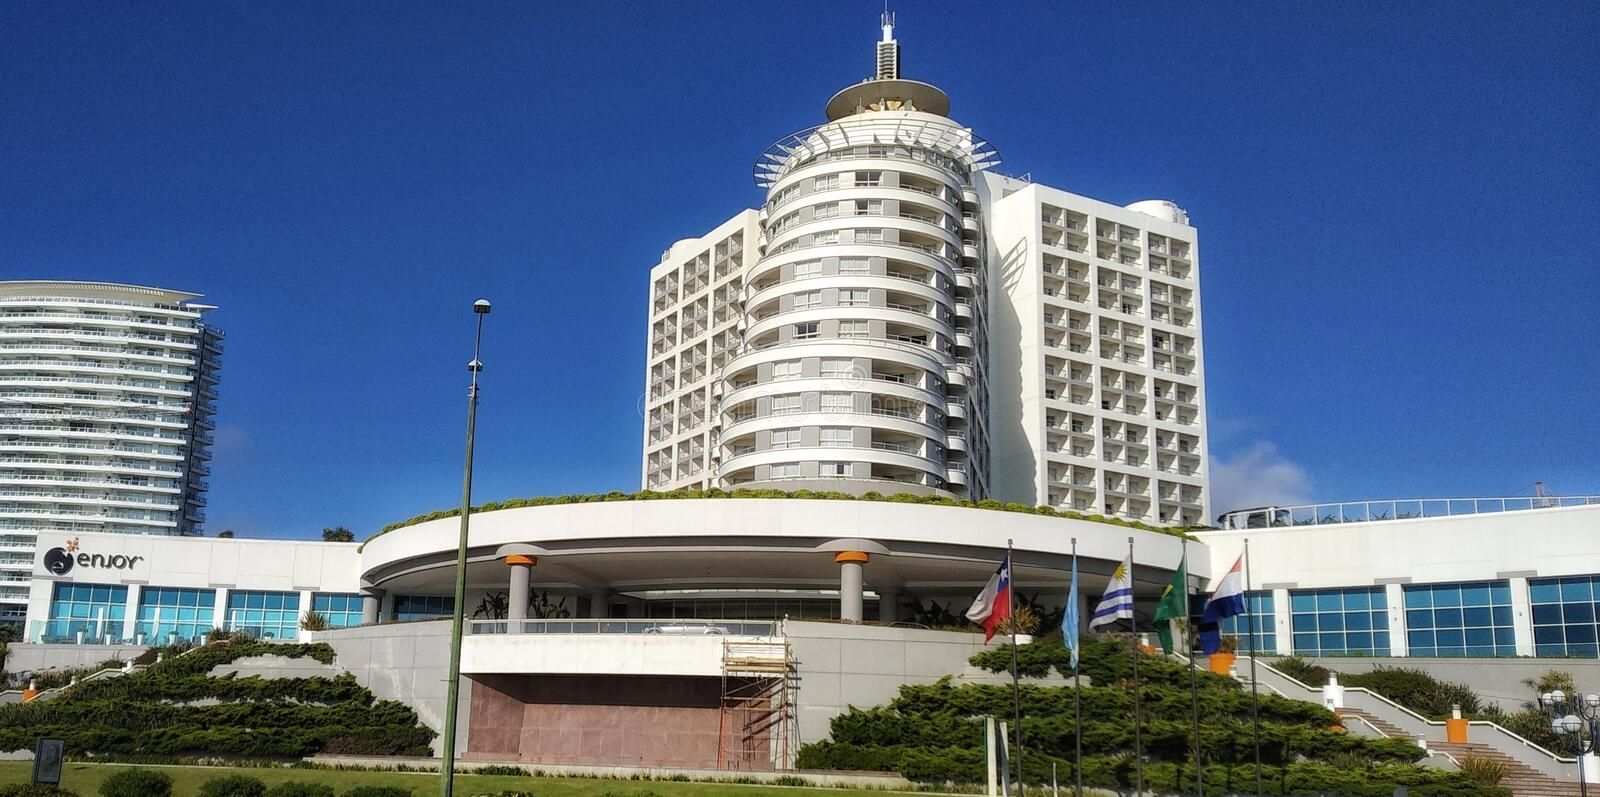 Enjoy Punta del Este stock image